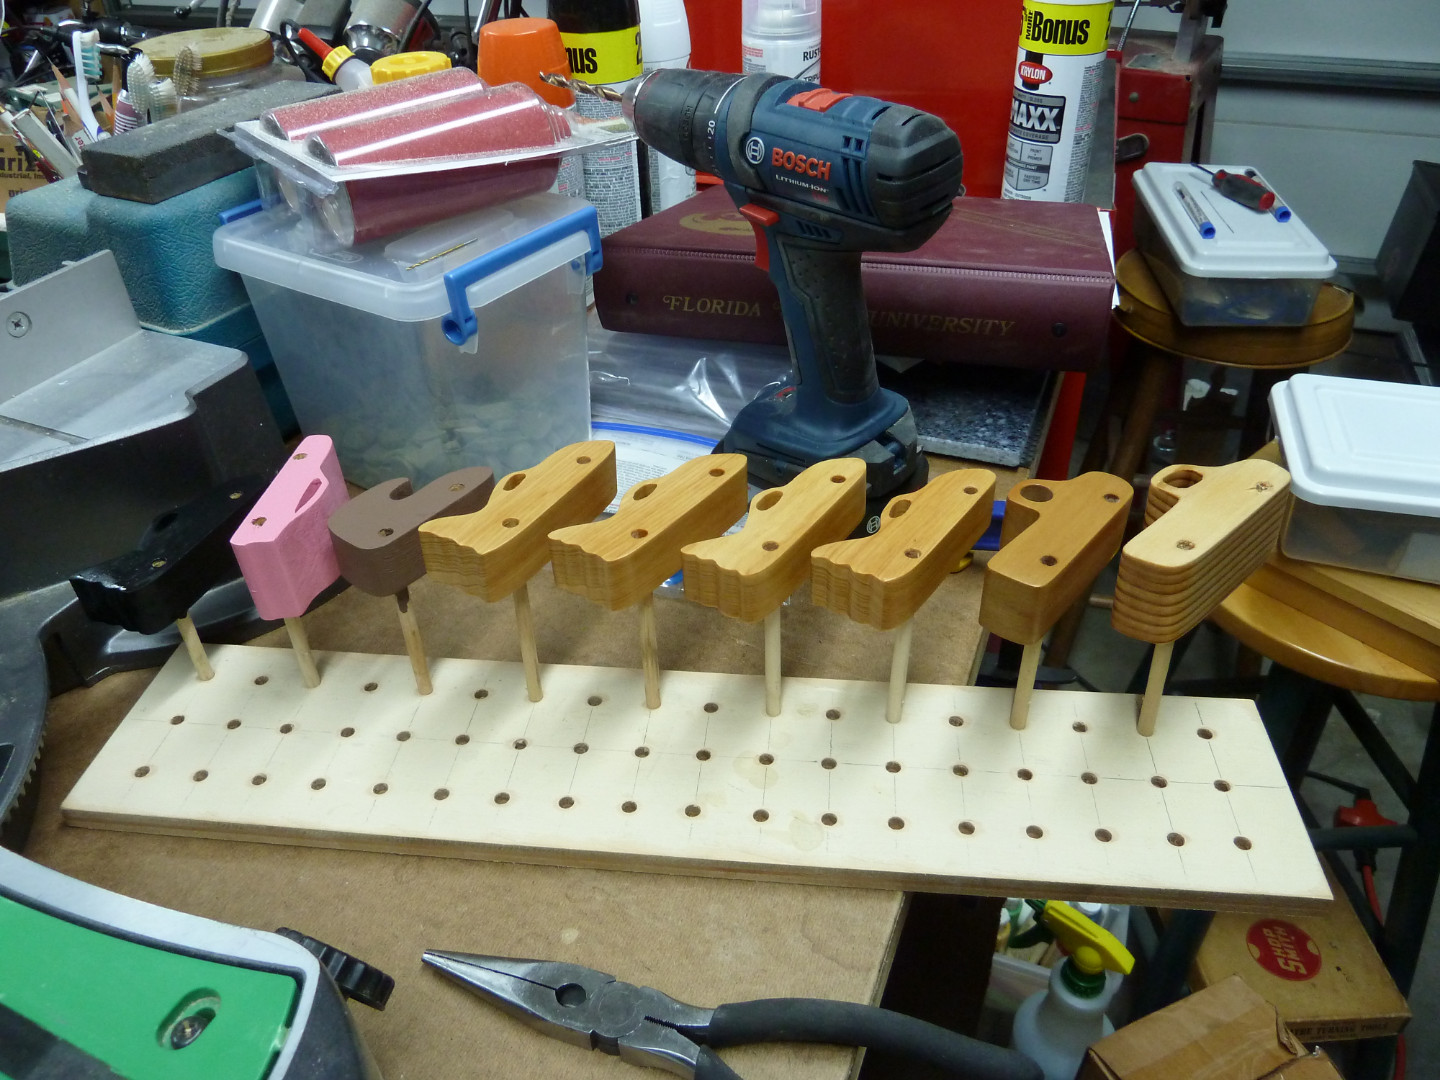 20150906-141130 014 Toymakers Shop  Parts Holding Jig Holding Play Pal.jpg